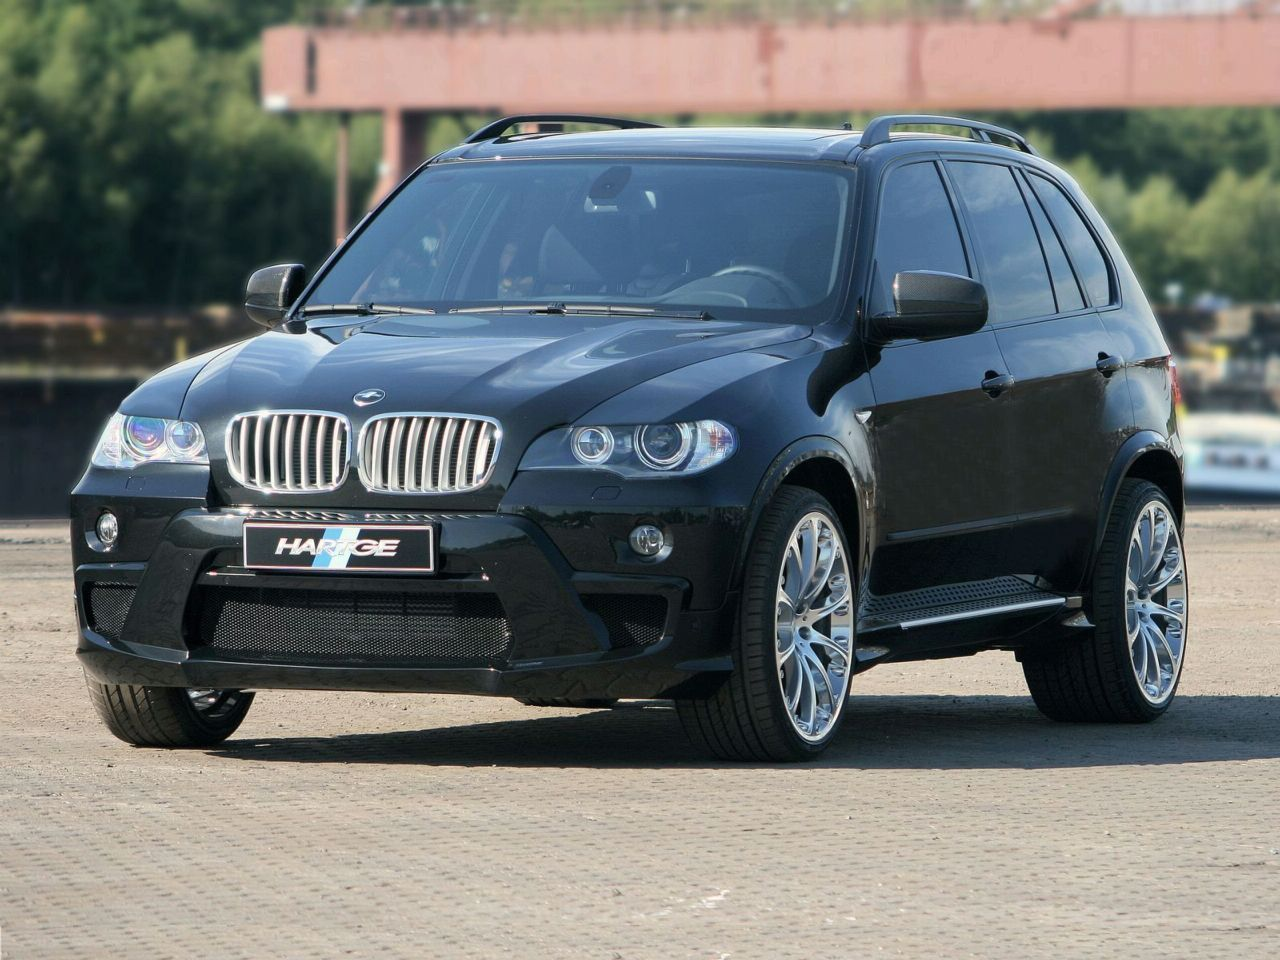 bmw x5 xdrive 35d by hartge news tuning directory. Black Bedroom Furniture Sets. Home Design Ideas